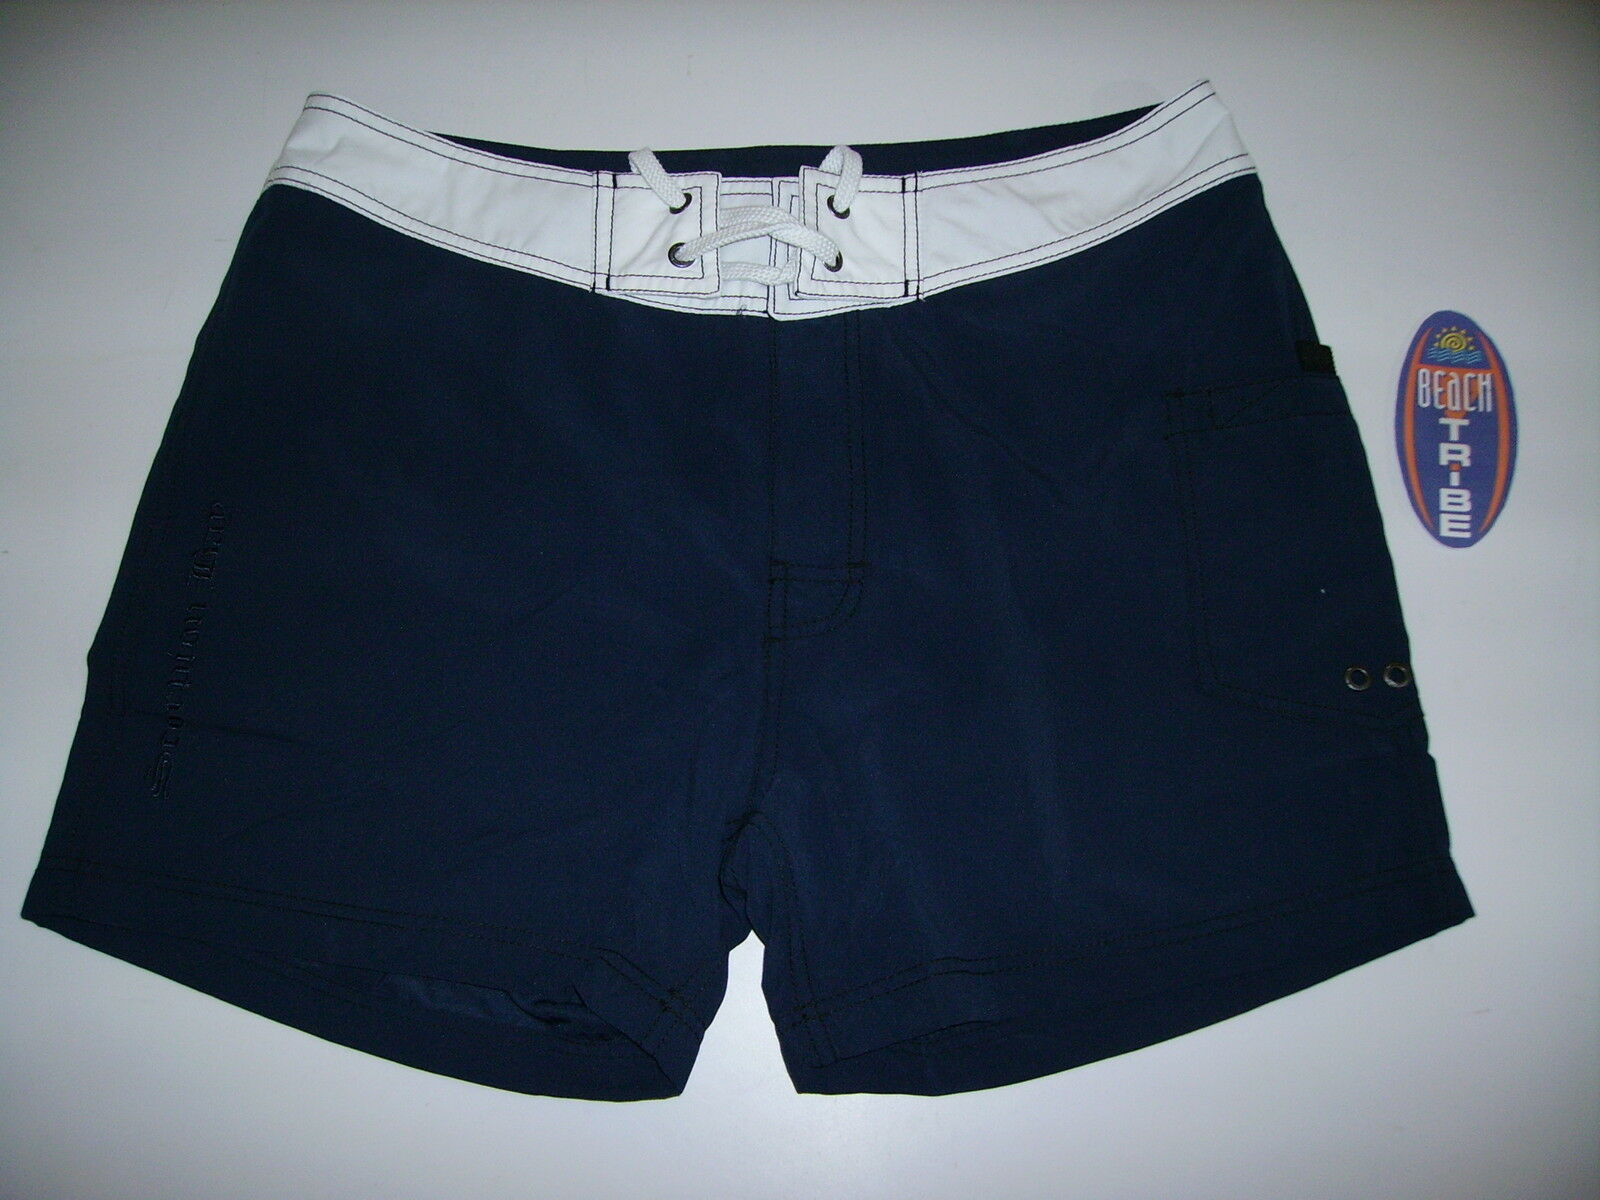 SCORPION BAY BOARDSHORT SHORTS SEA COSTUME MBS2703 NAVY blueE WHITE 28